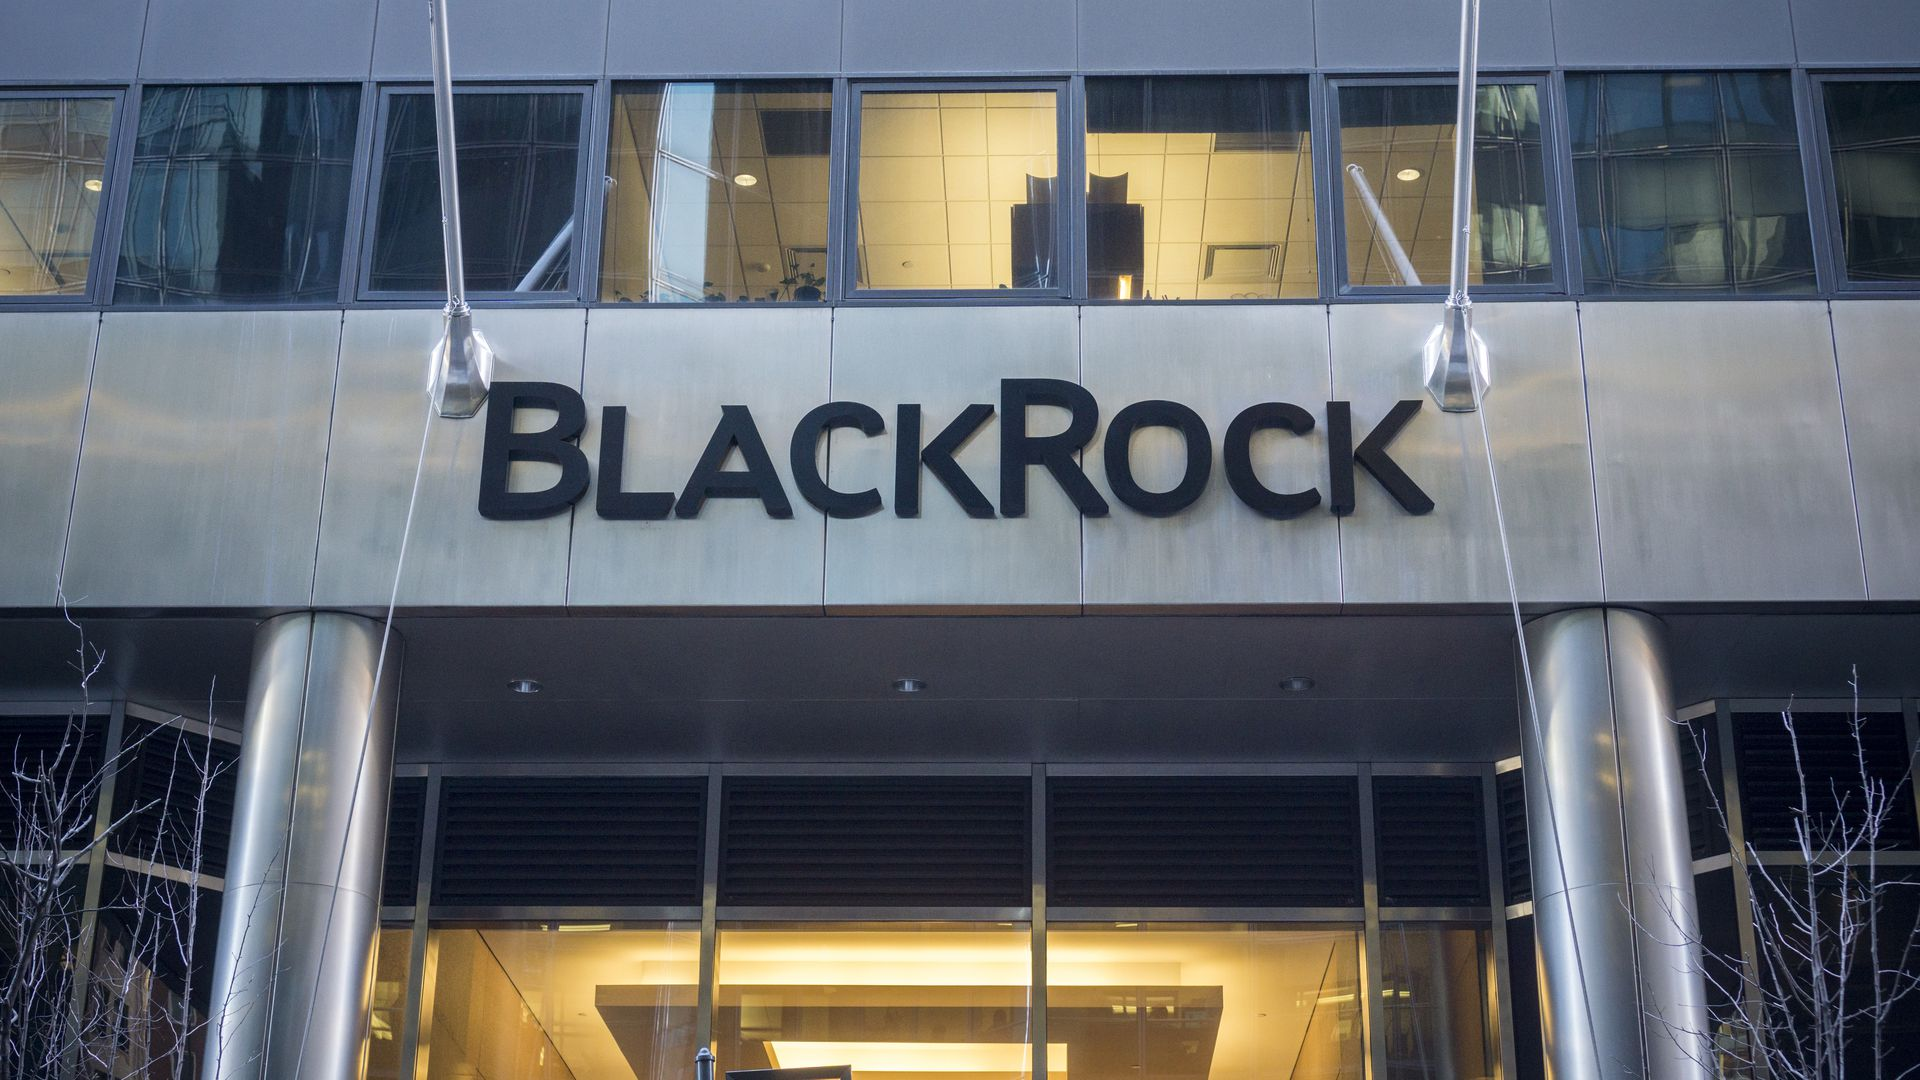 The New York headquarters of the BlackRock investment management firm on Friday, February 5, 2016